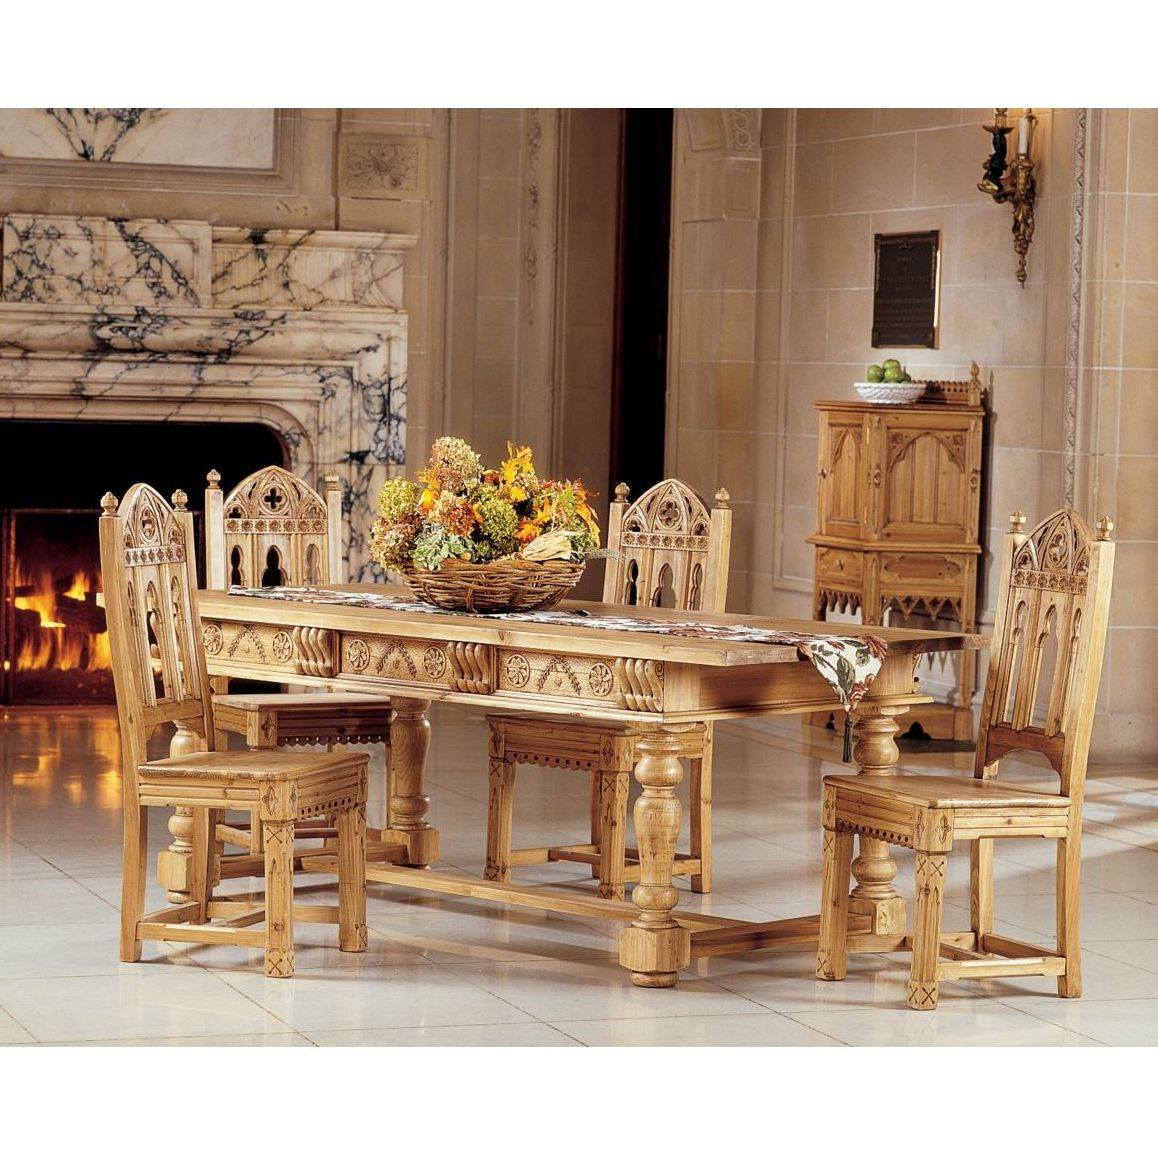 Love This Table Solid Pine And Gothic Carvings  For The Home Custom Pine Dining Room Table And Chairs Inspiration Design